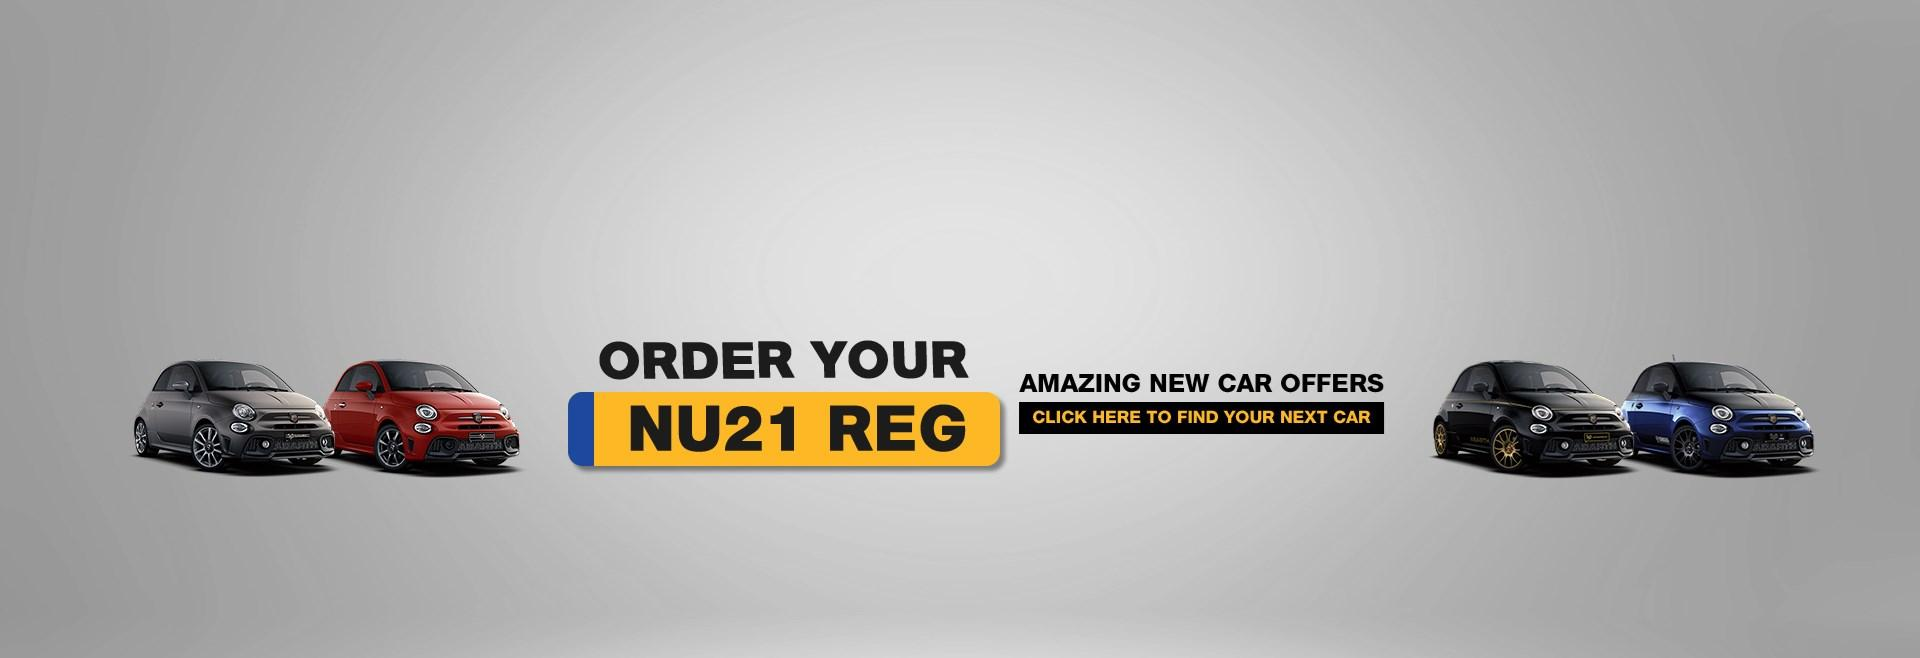 Order Your New 21 Reg with Ancaster Abarth